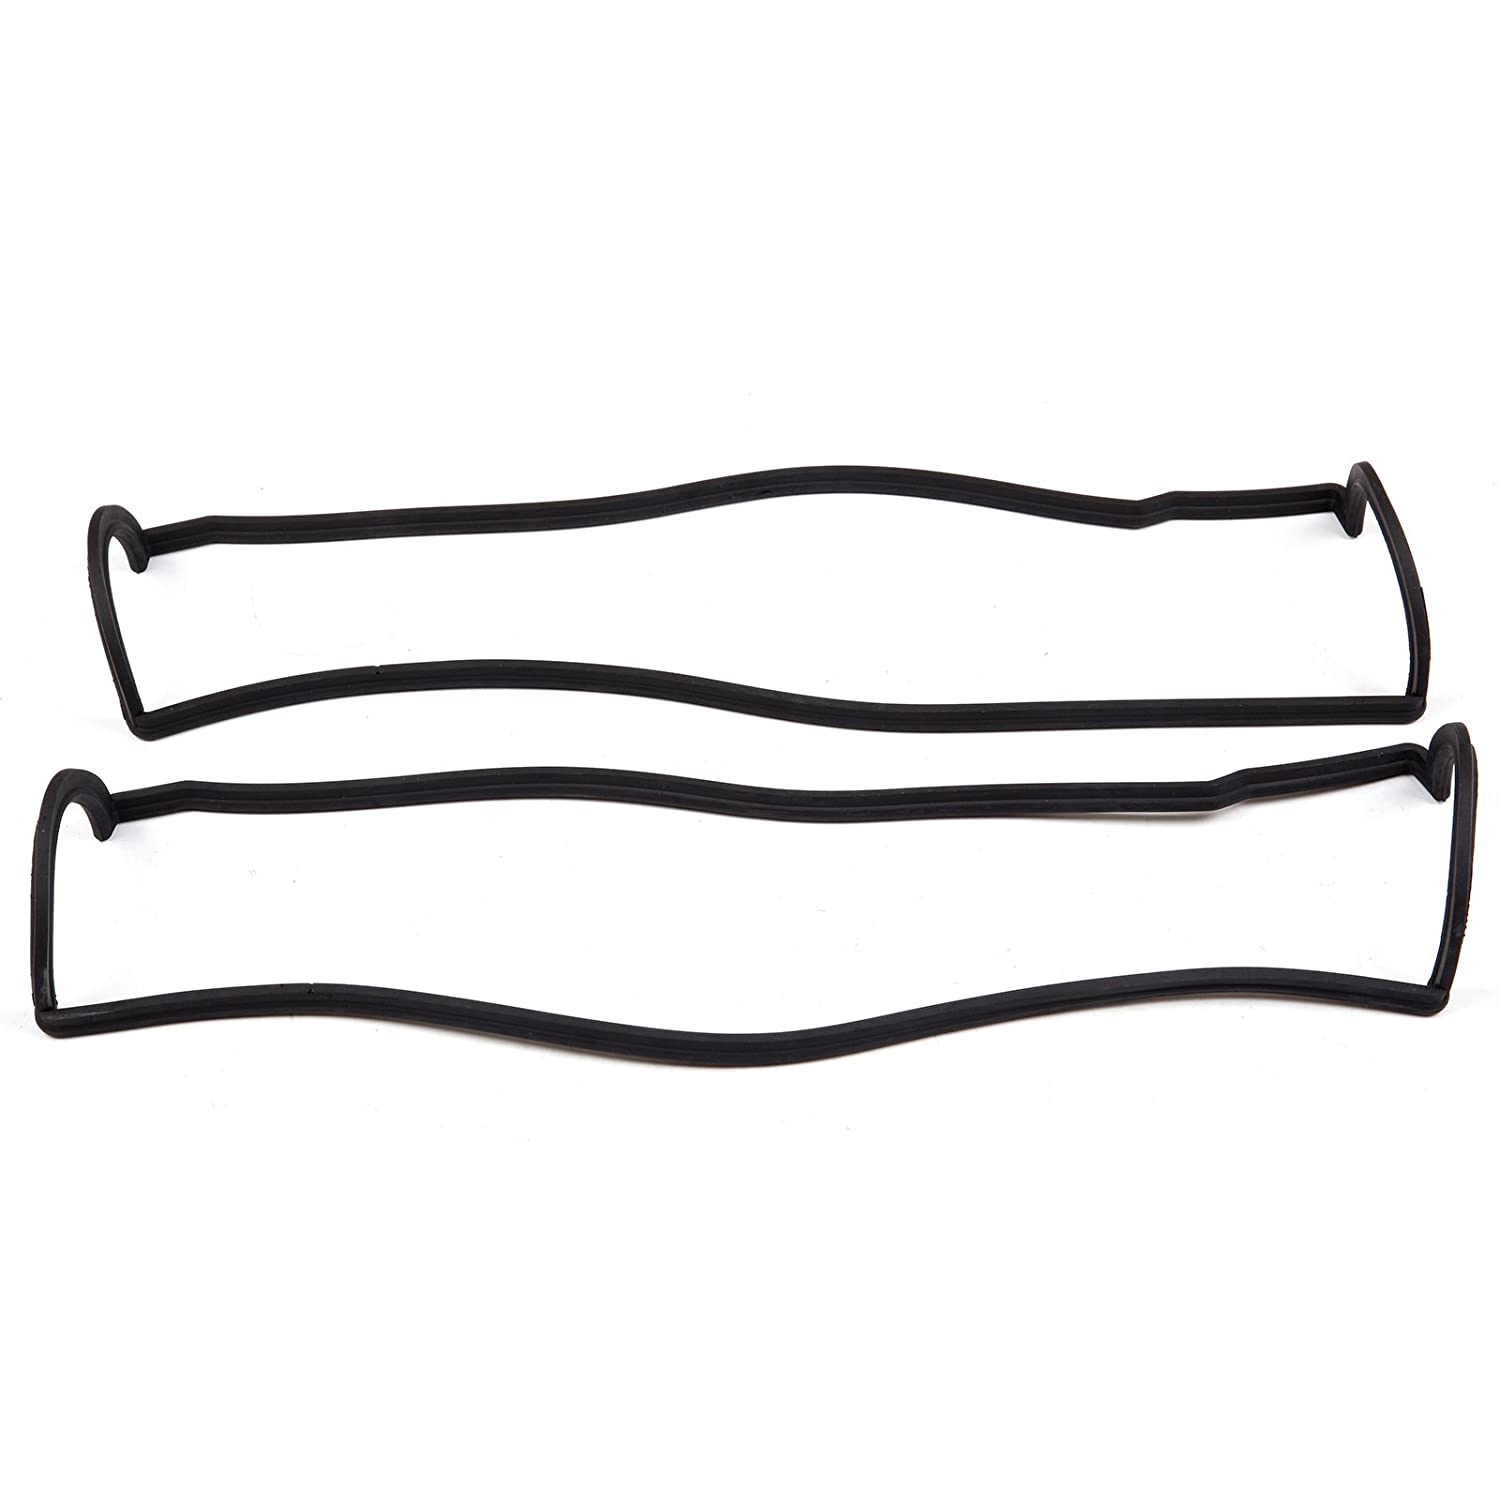 SCITOO Engine Valve Cover Gasket Set fit 88-95 Toyota Pickup 4Runner T100 3.0 SOHC 3VZE